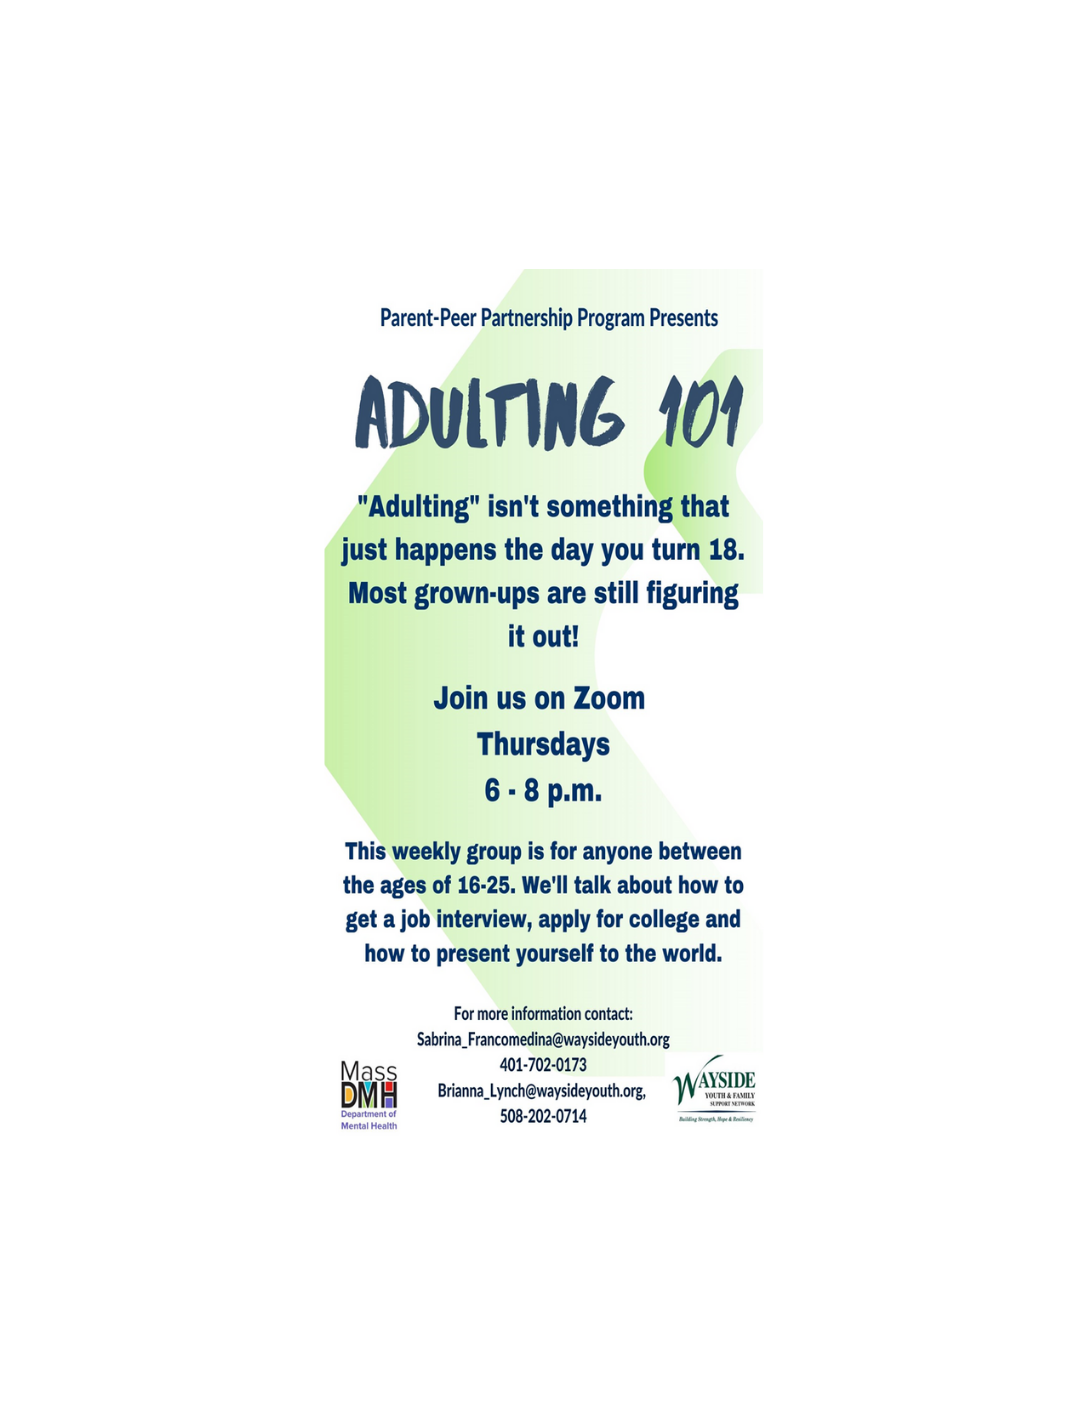 Adulting 101: Wayside Youth & Family Support Network (Virtual Young Adult Support Group, Ages 16-25)